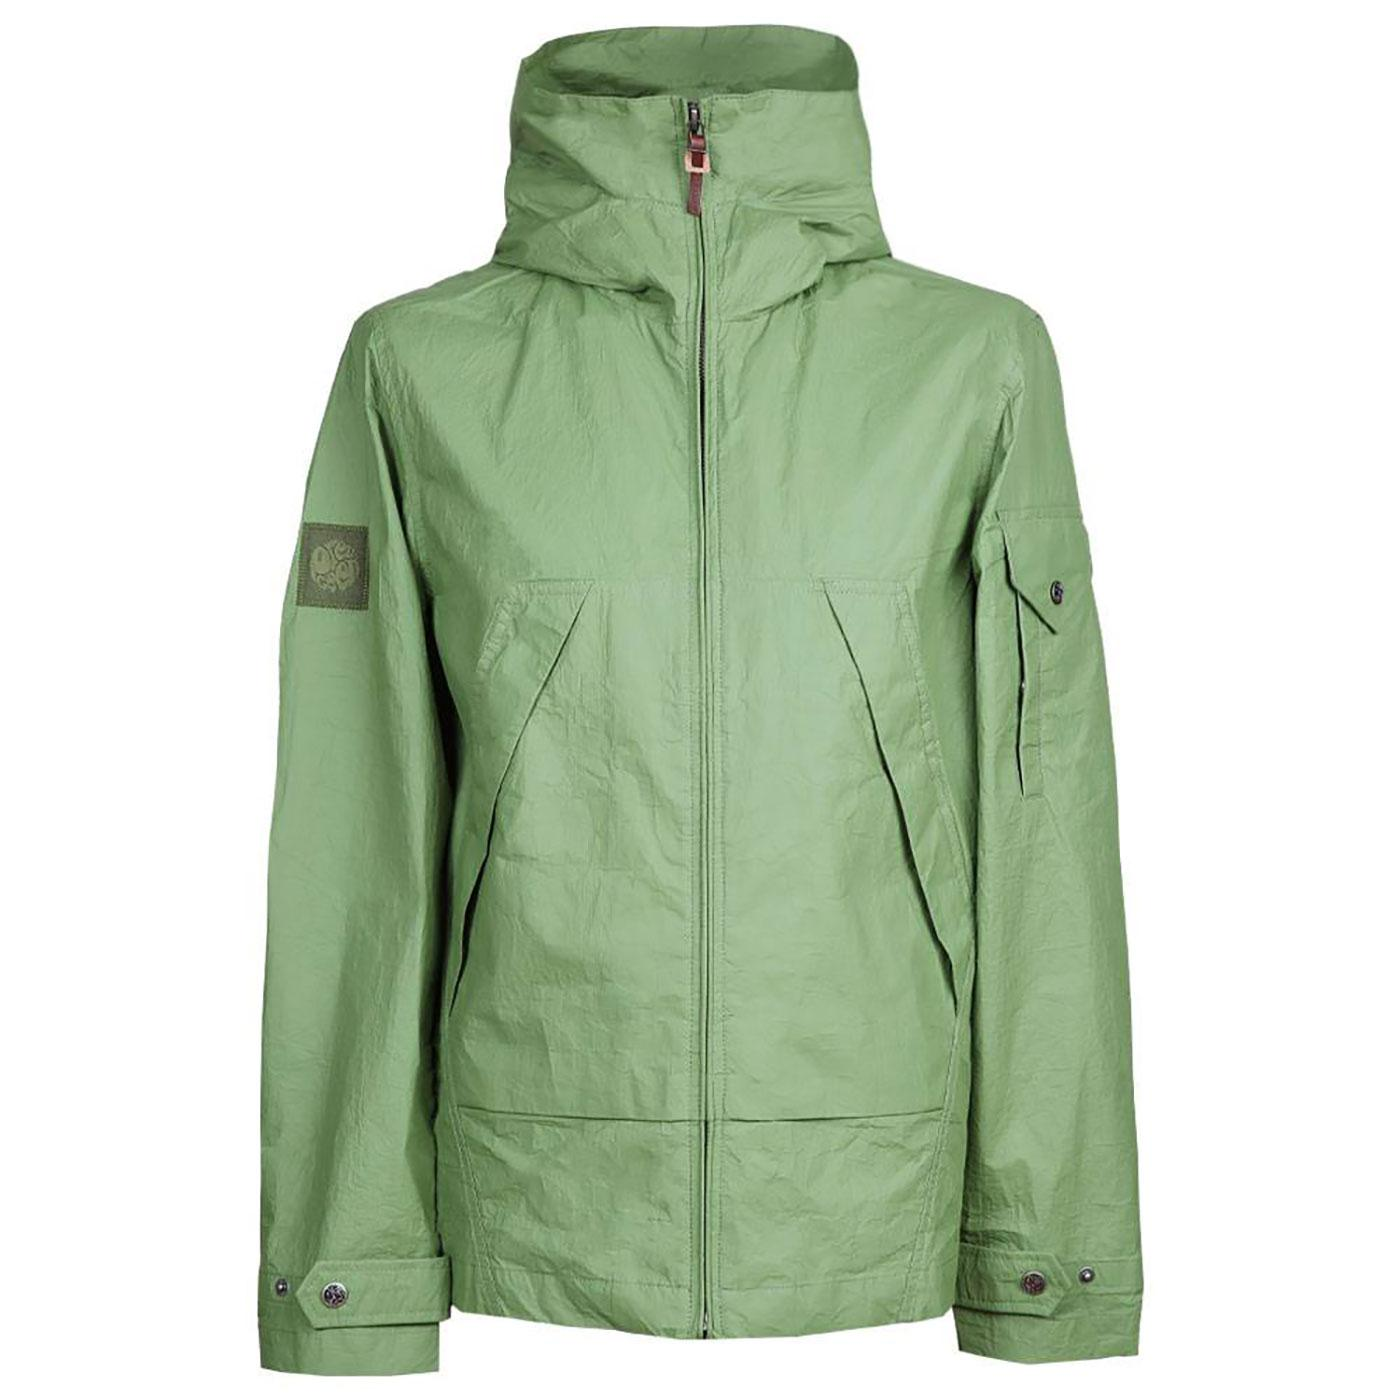 PRETTY GREEN Retro Mod Zip Up Hooded Jacket G